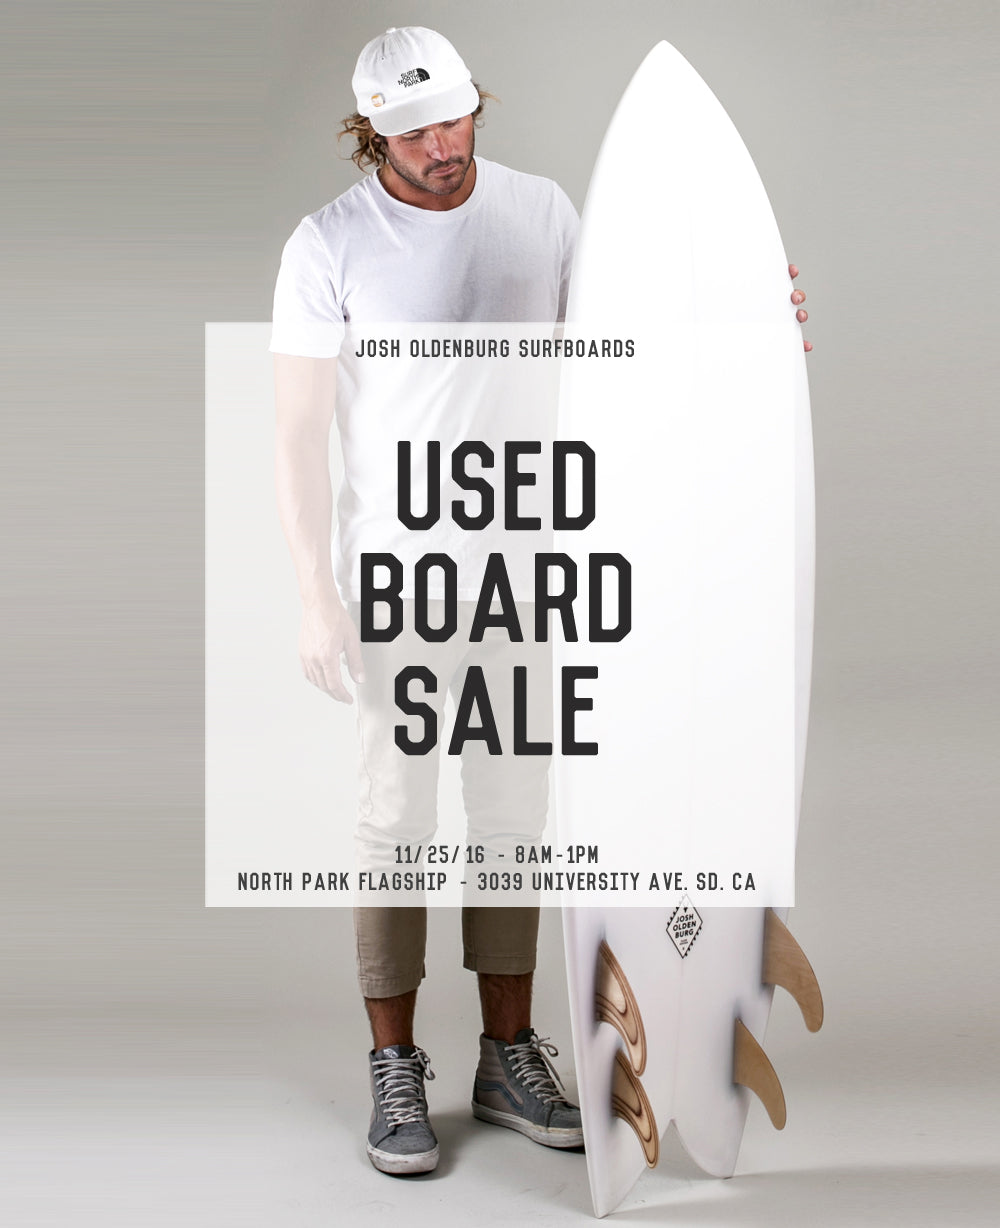 Josh Oldenburg Surfboard Sale